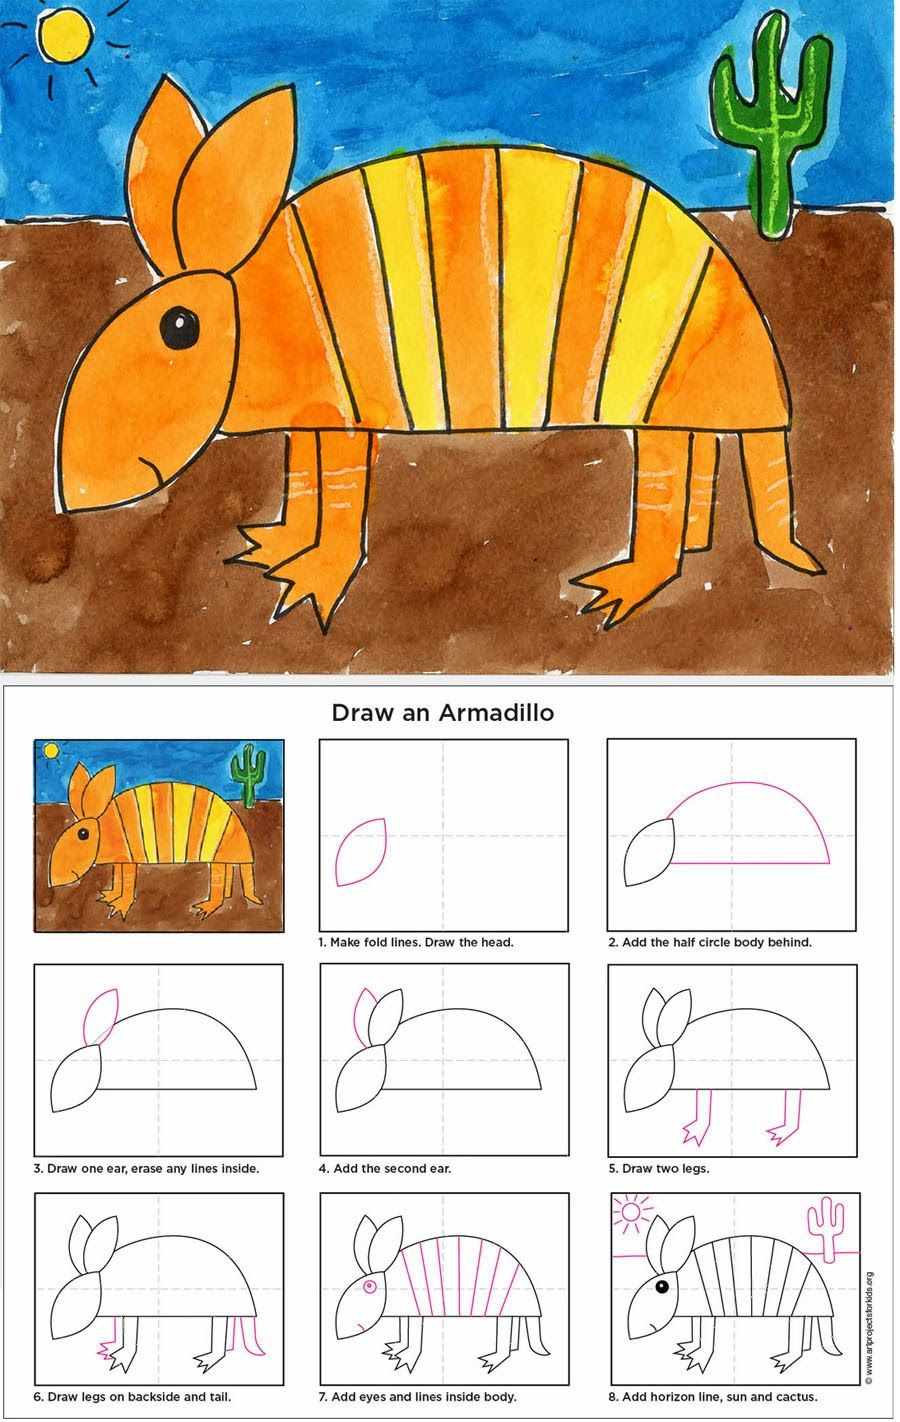 How to Draw an Armadillo (Art Projects for Kids) Animal